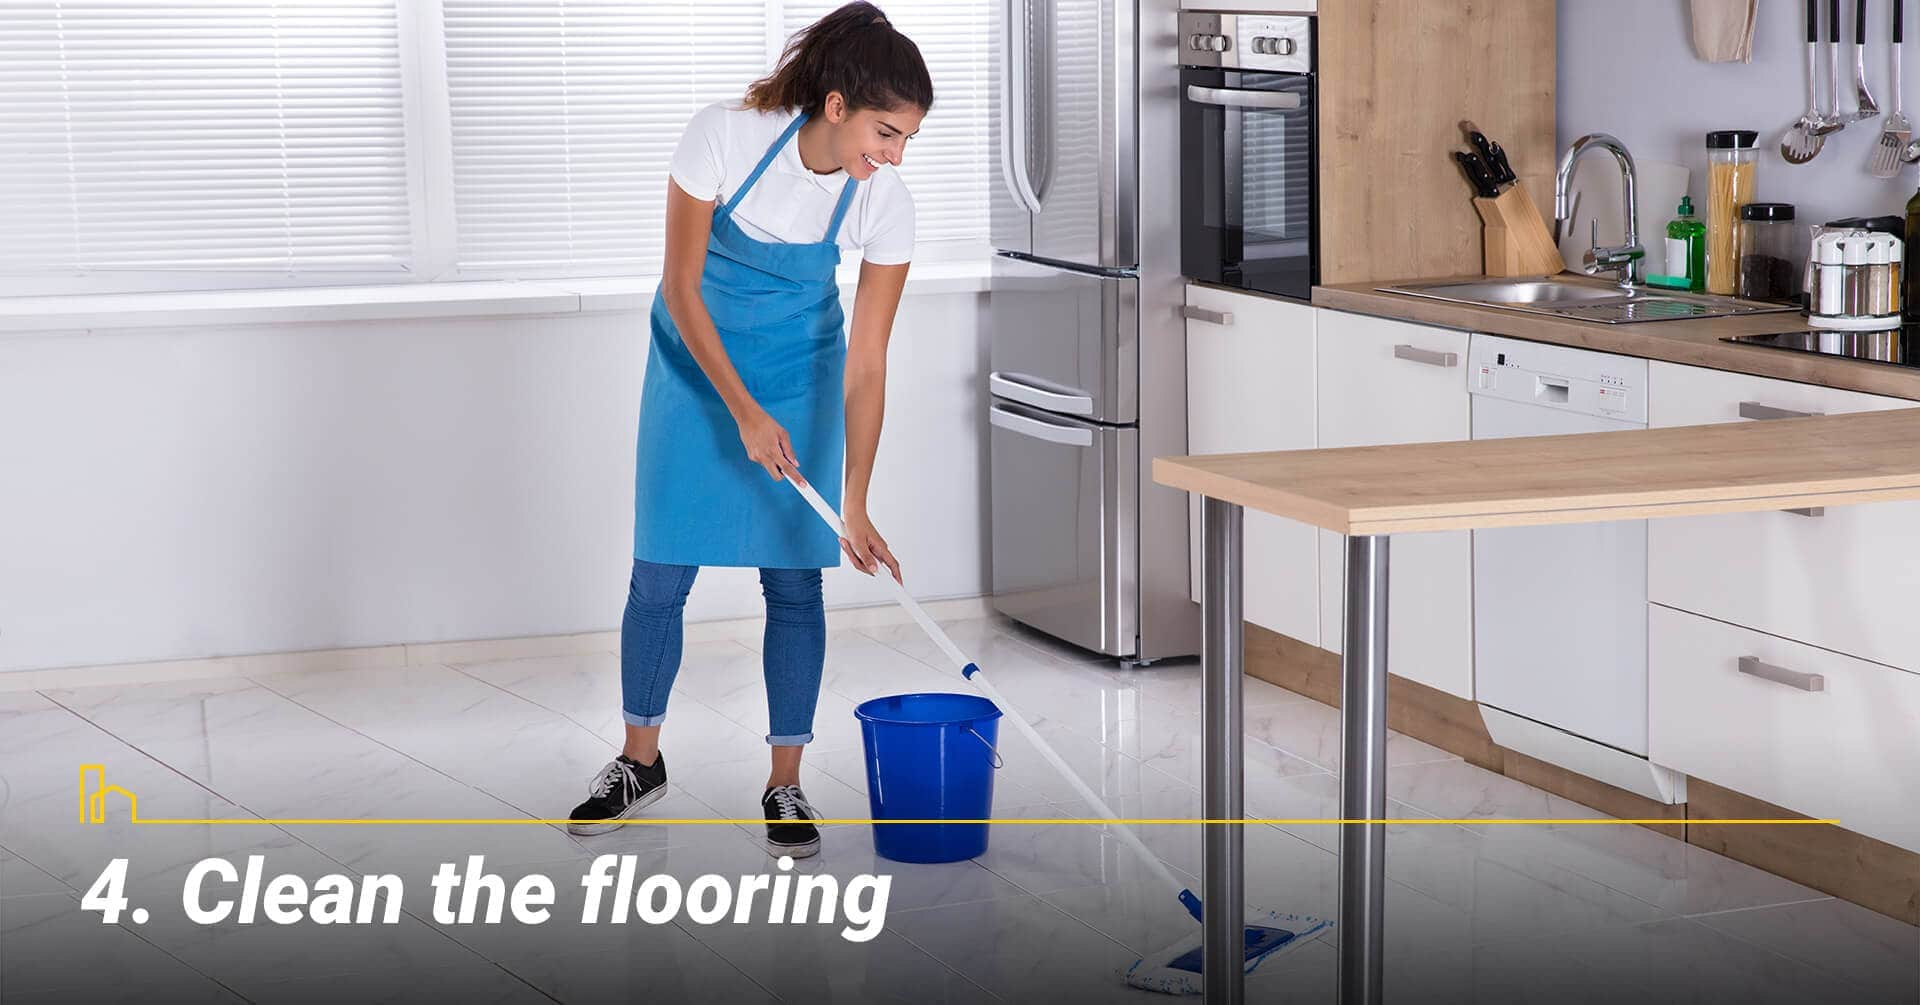 Clean the flooring, keep the floor clean